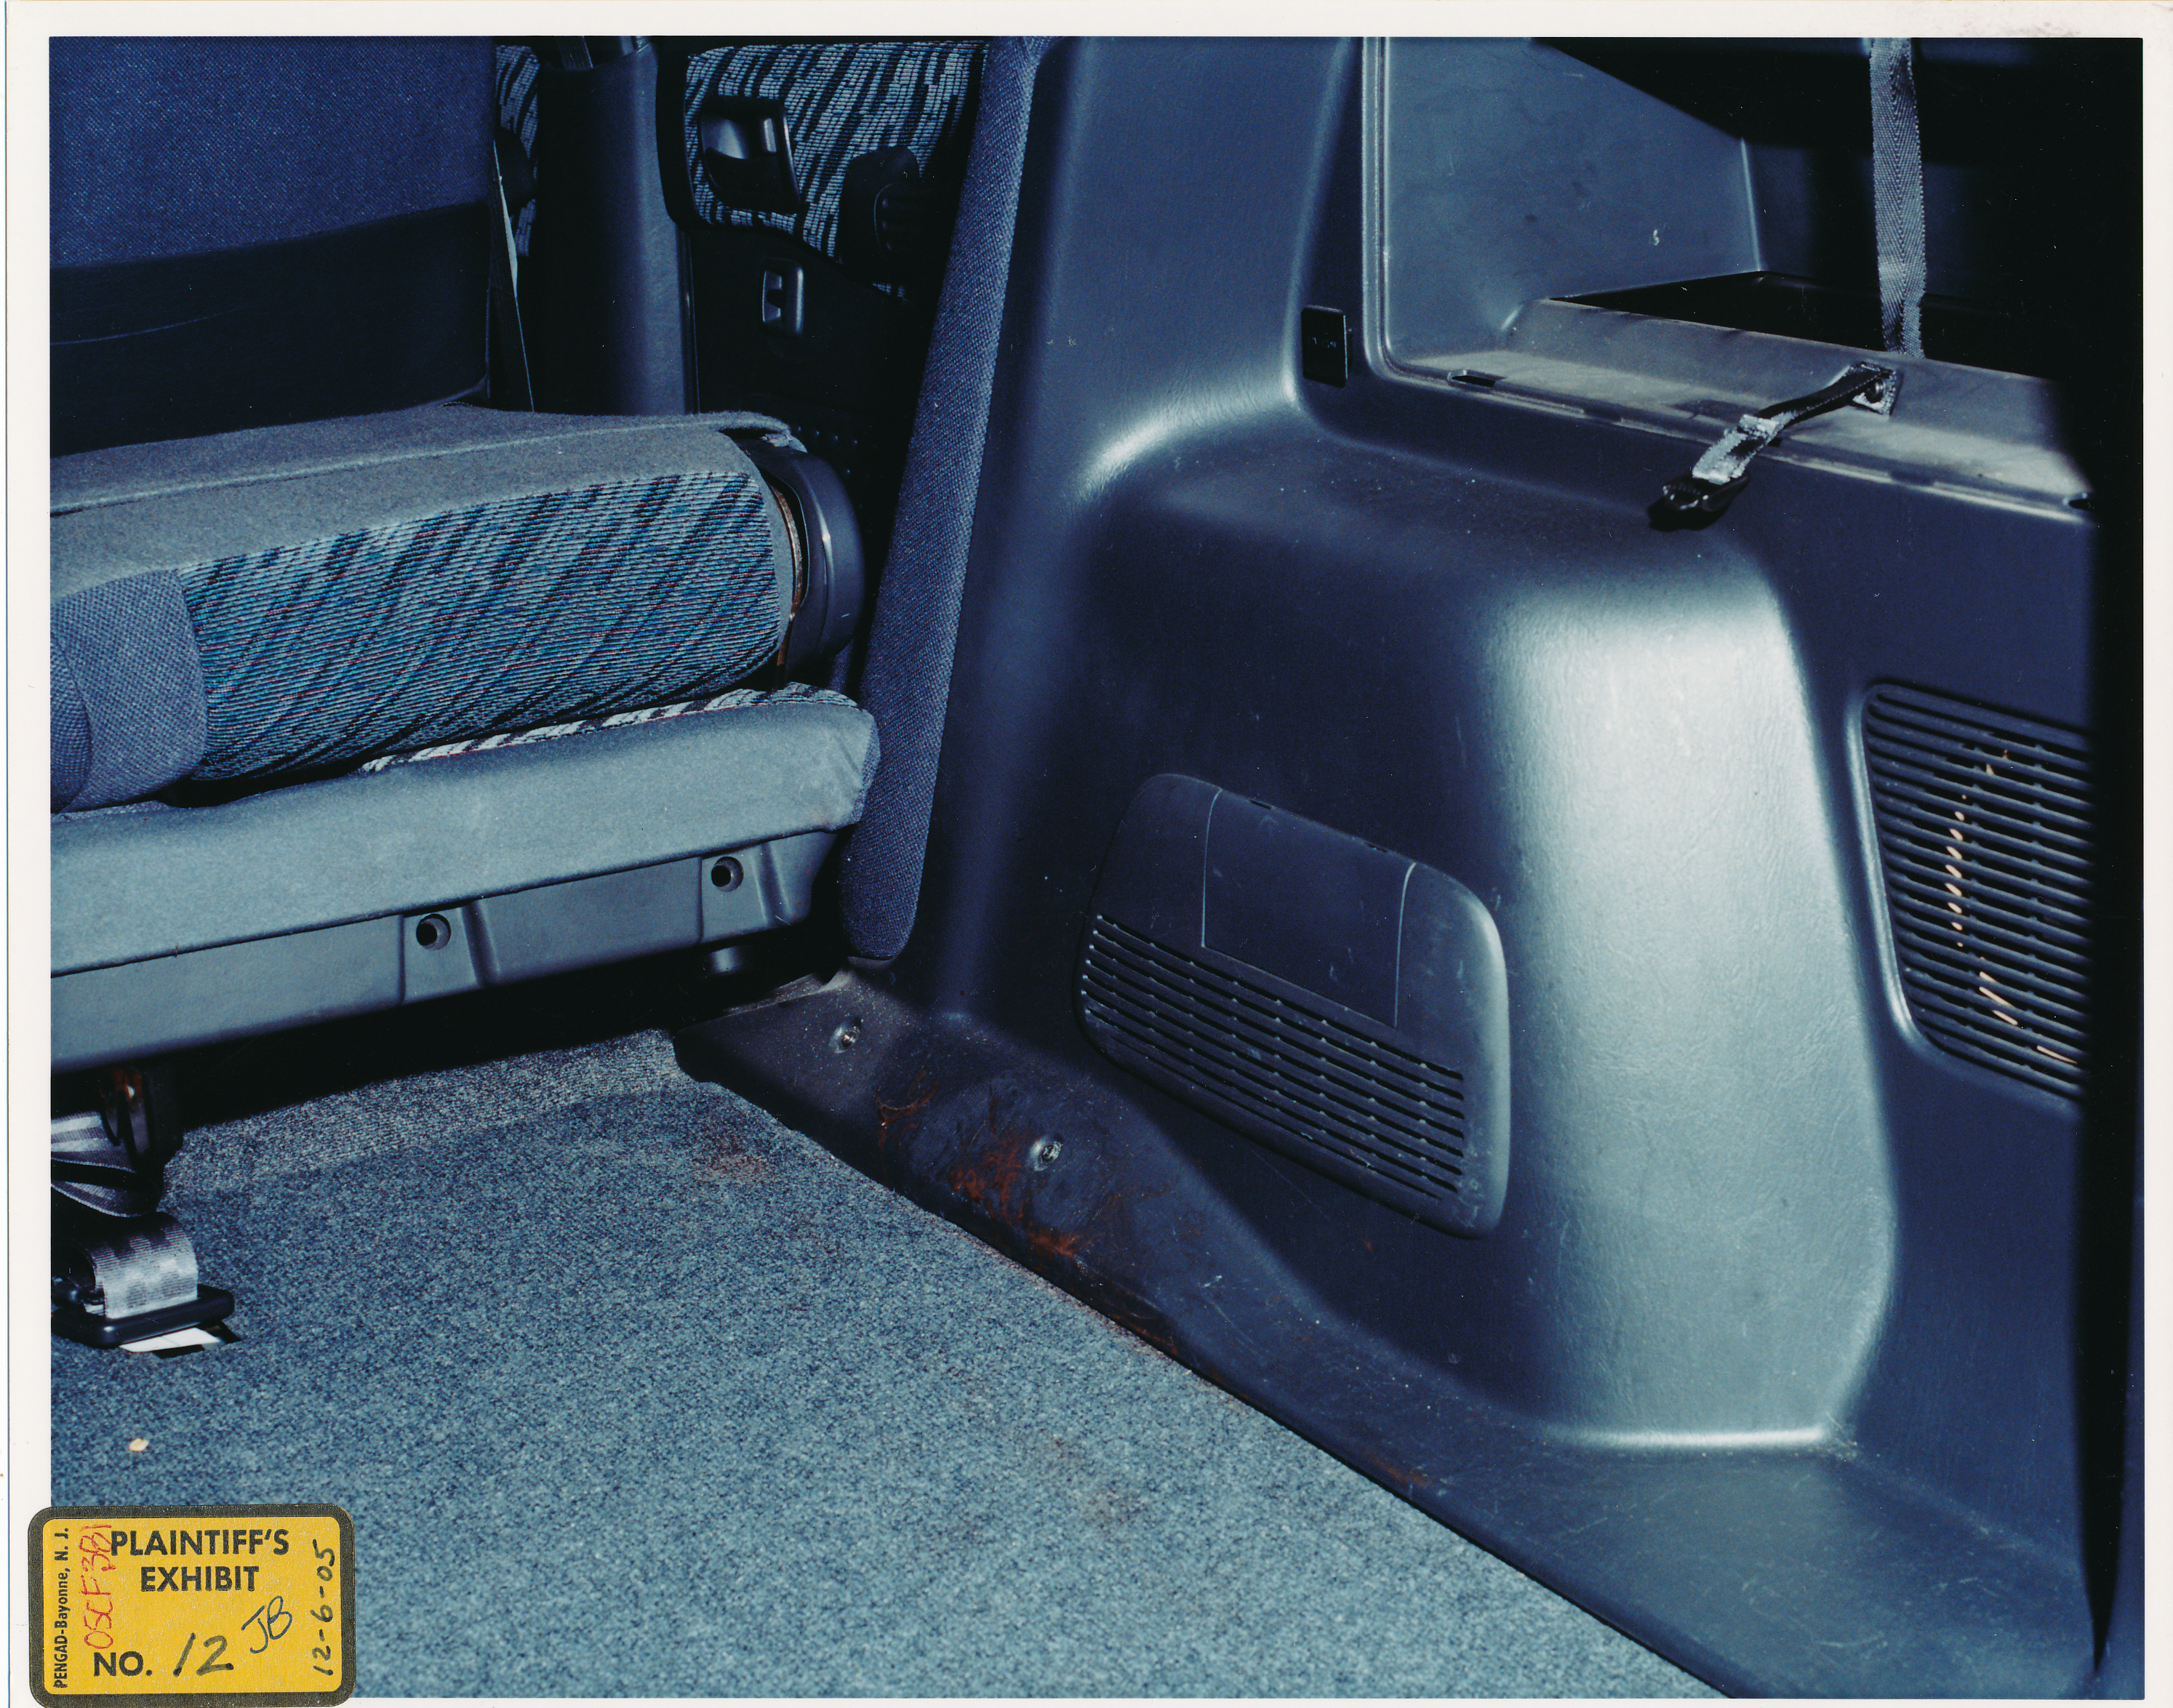 The Blood Stains On Passenger Side Cargo Area Floor Appear To Show A Distinct Line Along Plastic Panel Where Something Was Covering Interior